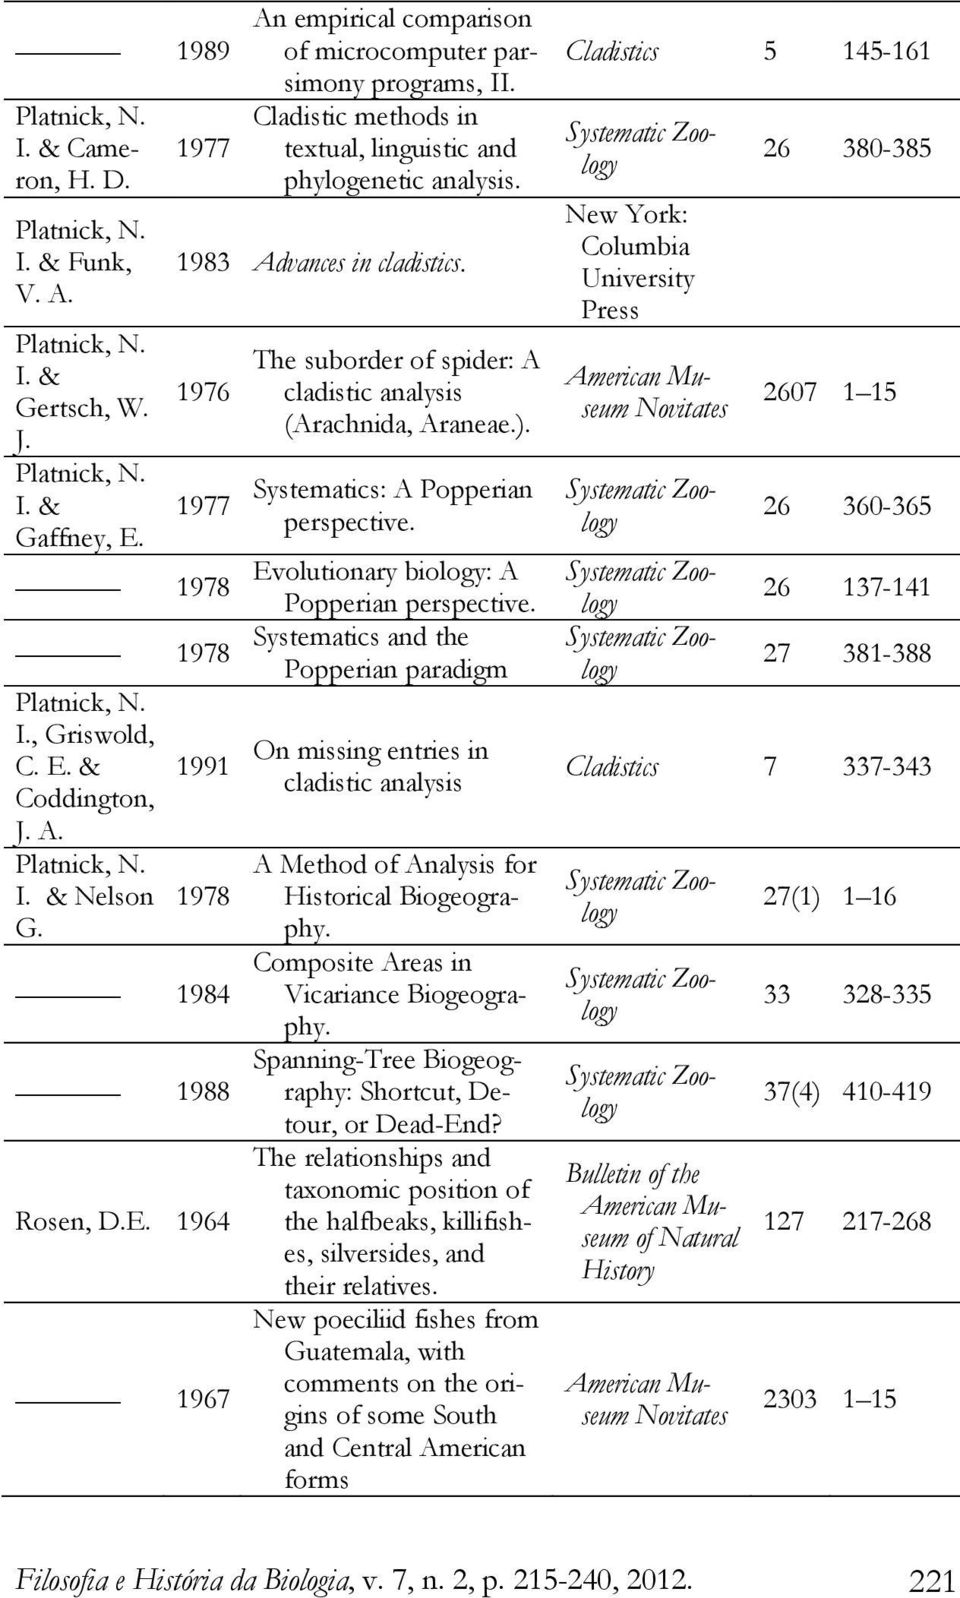 1983 Advances in cladistics. The suborder of spider: A cladistic analysis (Arachnida, Araneae.). Systematics: A Popperian perspective. Evolutionary biology: A Popperian perspective.